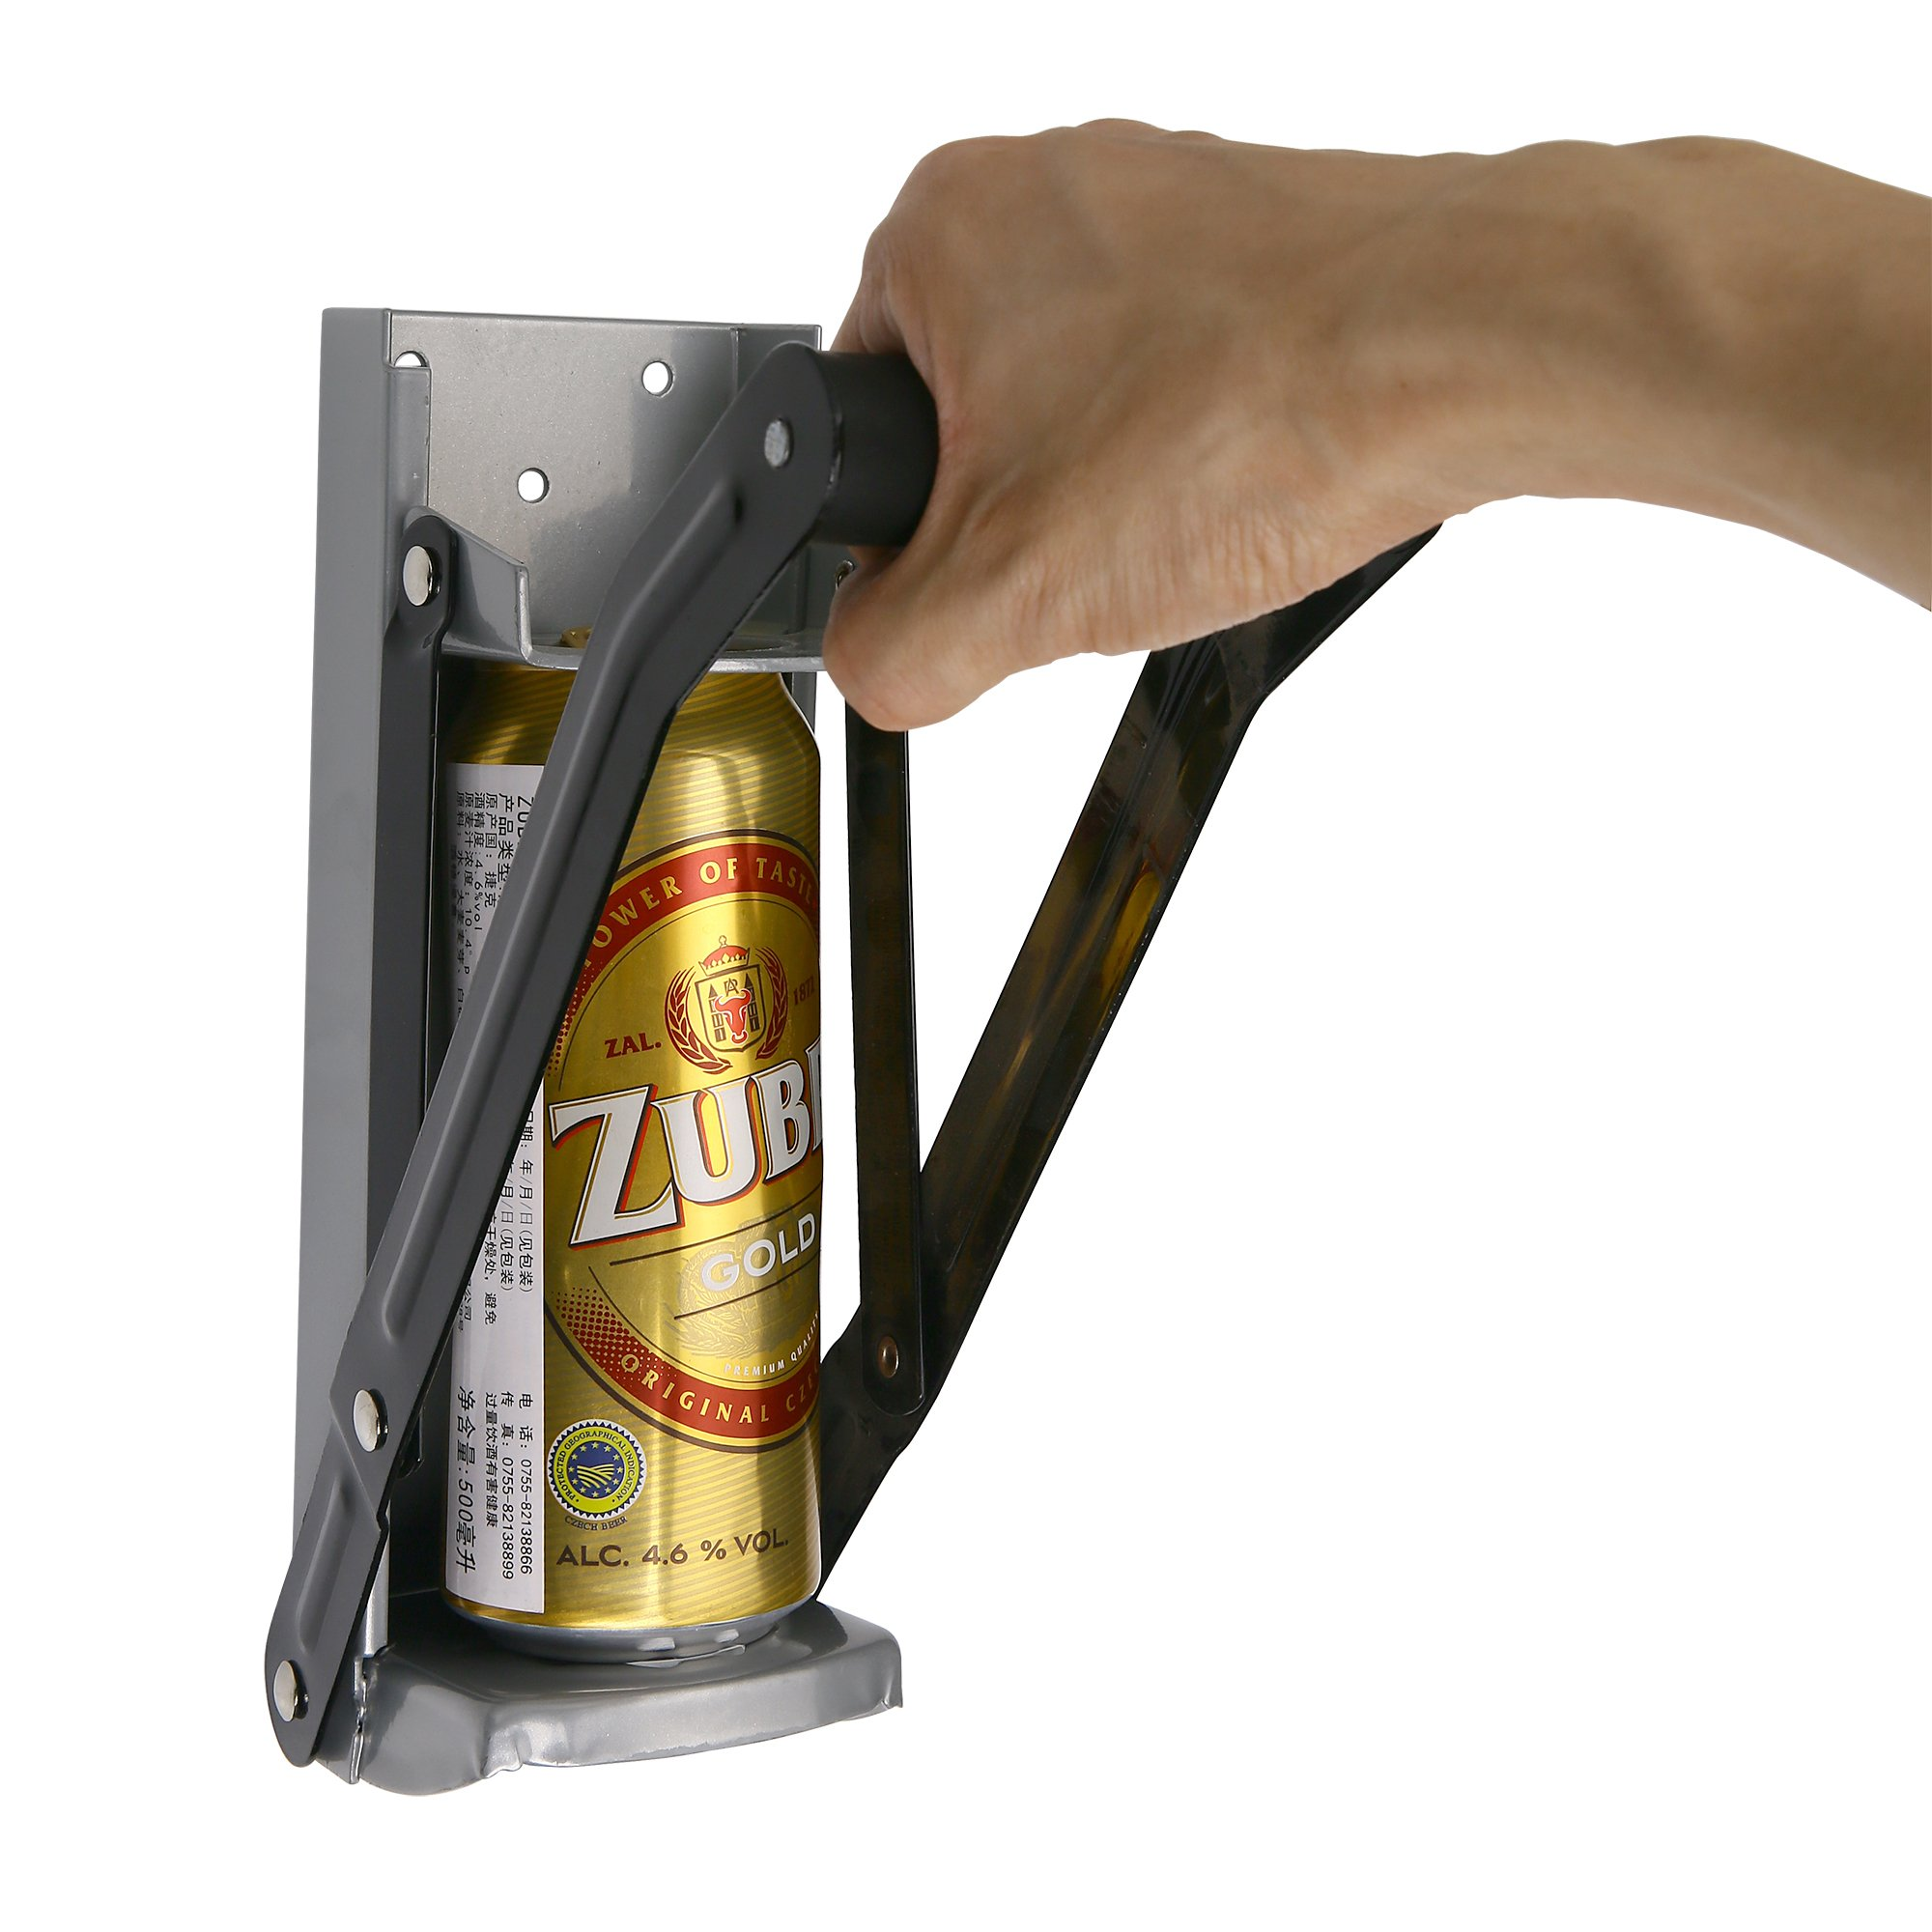 Aynoo 16 oz Cans Crusher wall mounted Soda Beer Can bottle Crusher Opener/Easy Pull Large Metal Auto Dispensing Soda Beer Smasher(16oz Grey) by Aynoo